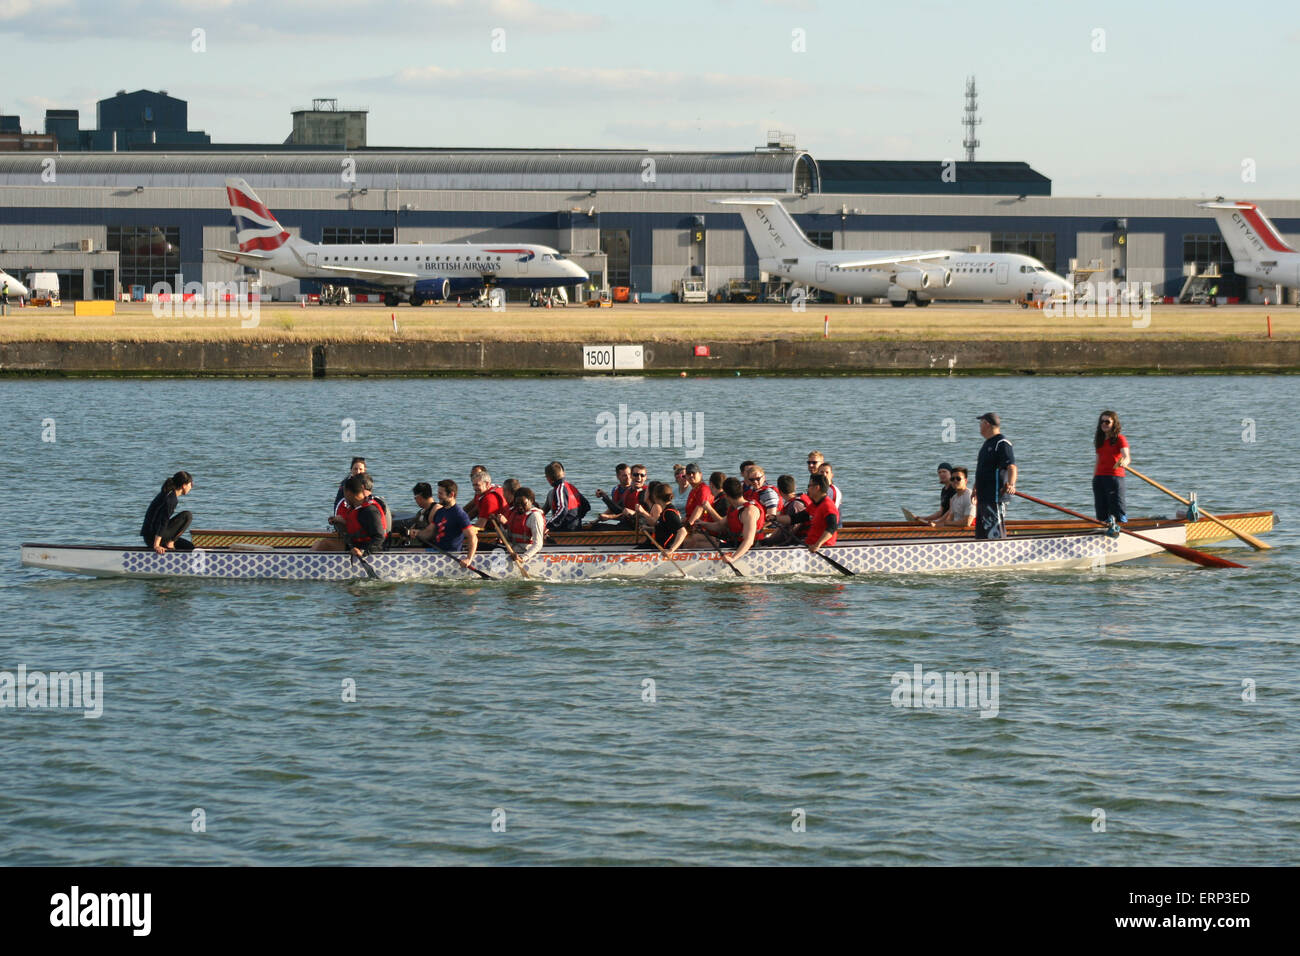 london city airport docklands boat rowing - Stock Image